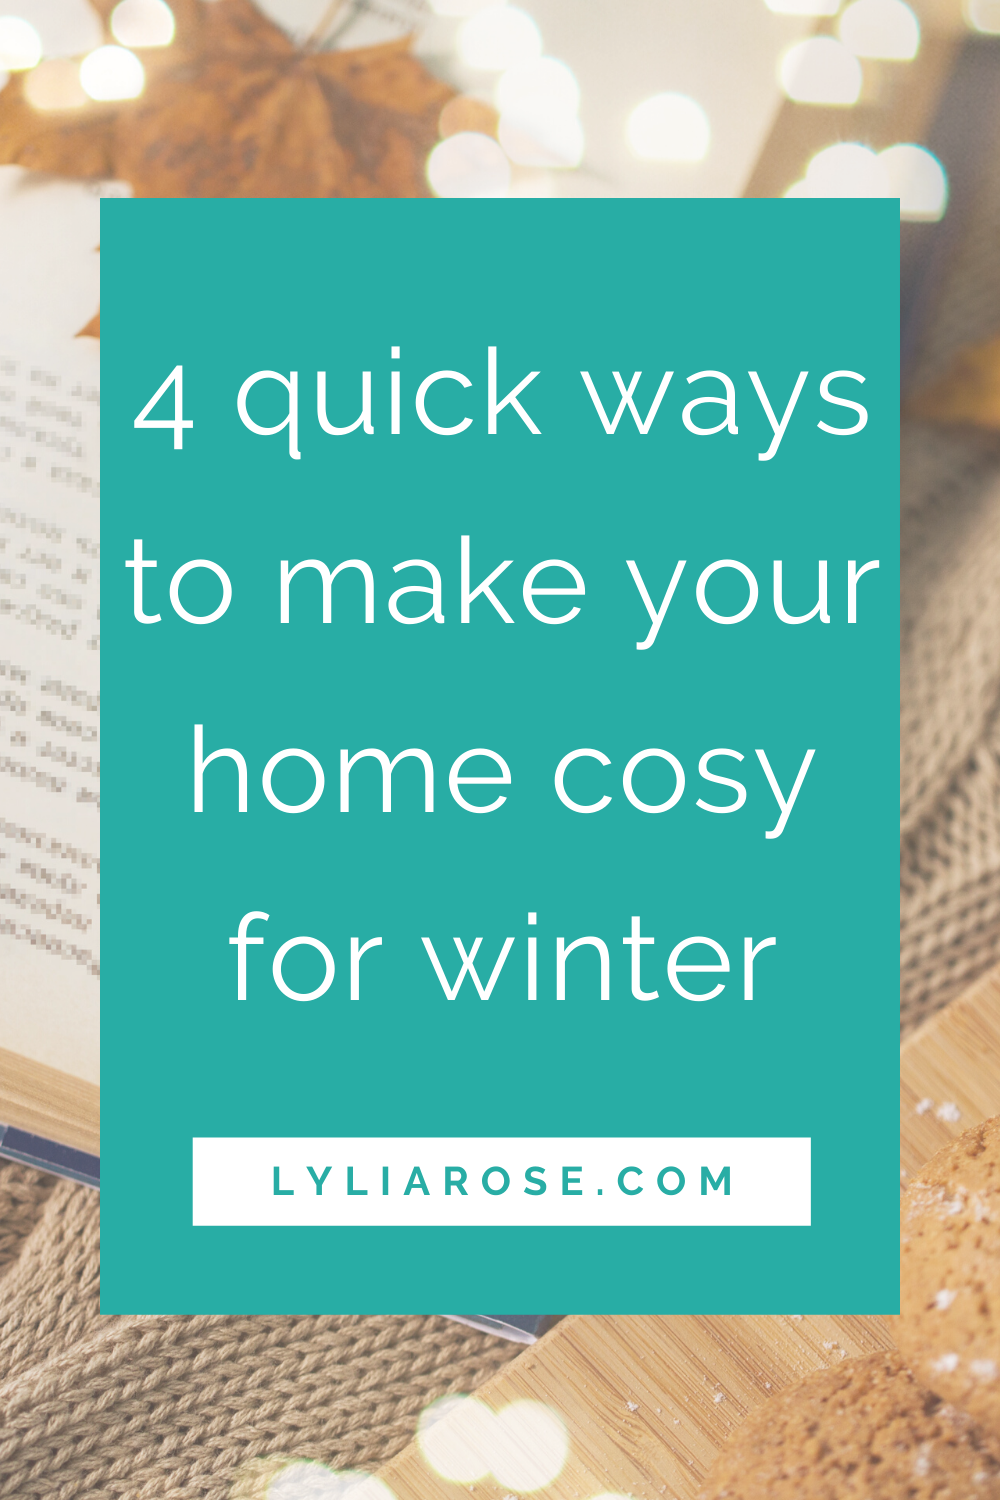 4 quick ways to make your home cosy for winter